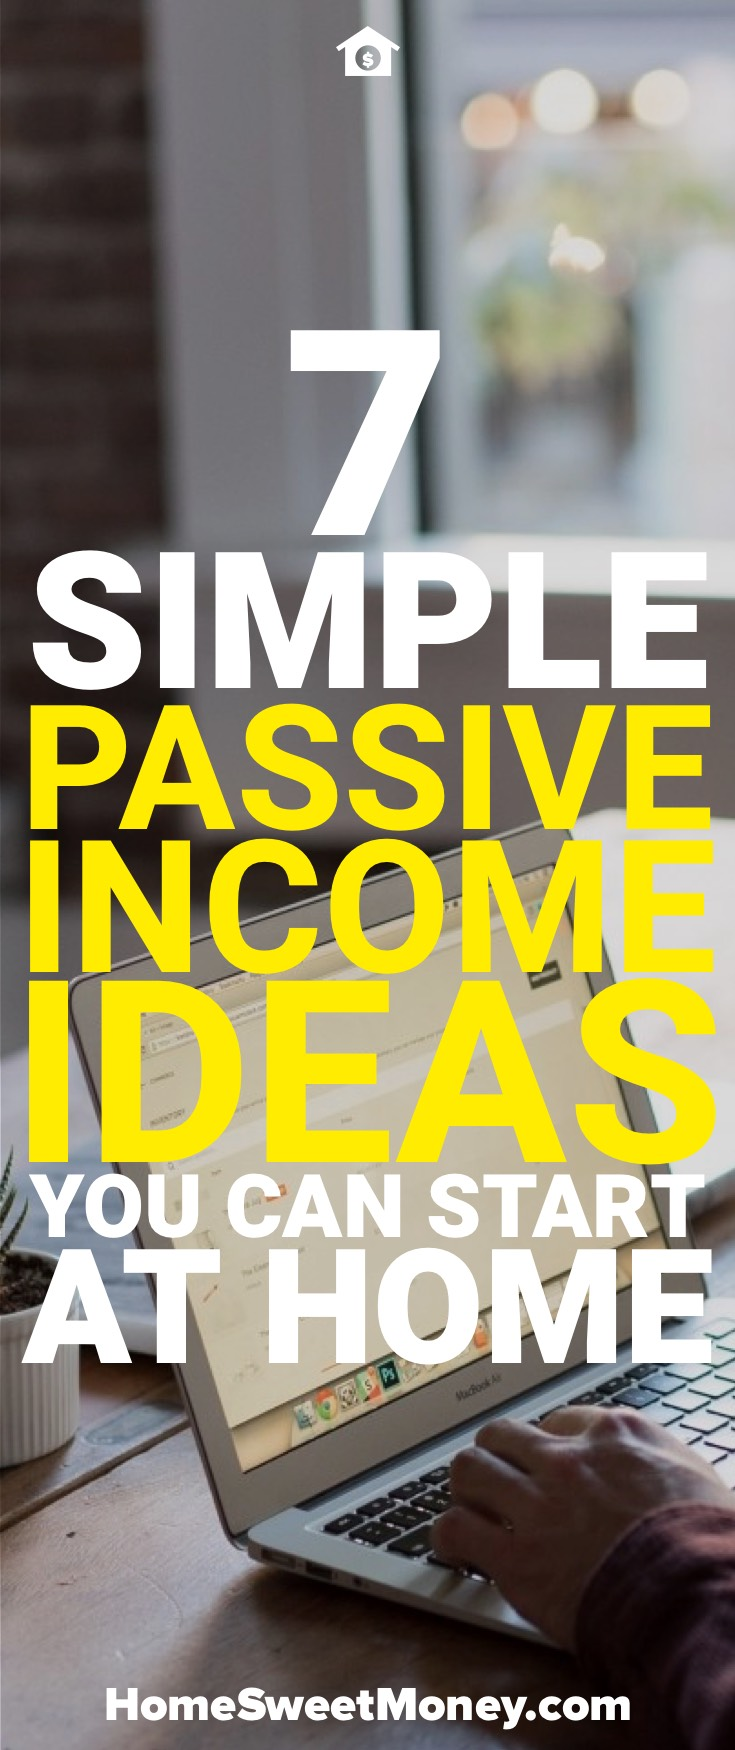 7 Passive Income Ideas to Make Money While You Sleep